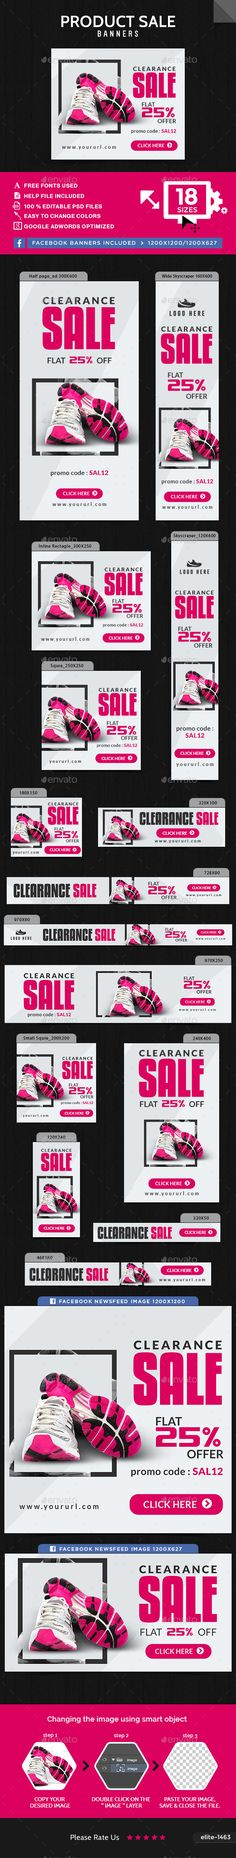 Product Sale Web Banners Template PSD. Download here: http://graphicriver.net/item/product-sale-banners/16048119?ref=ksioks